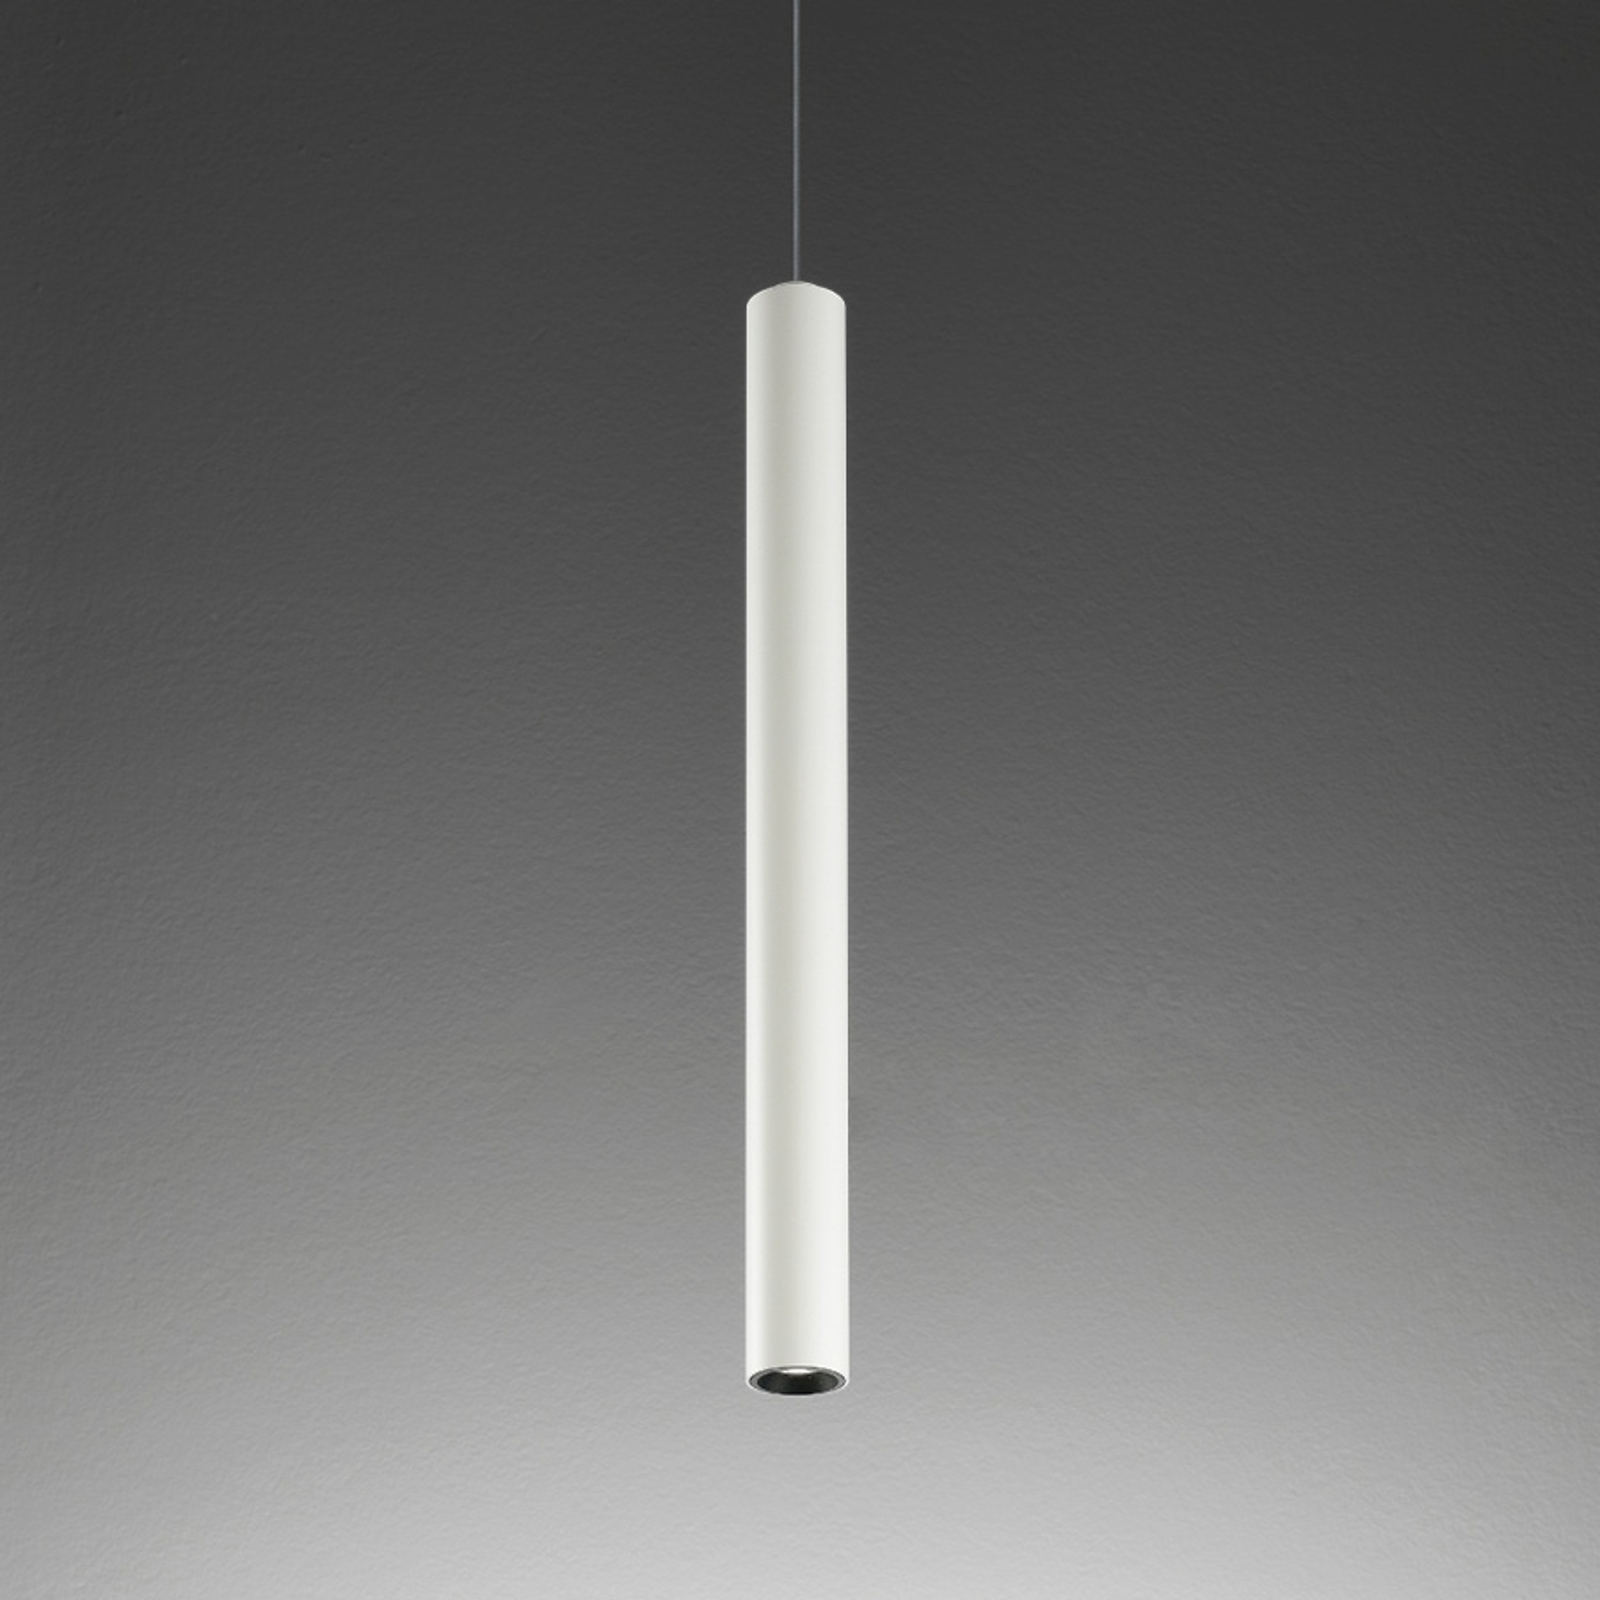 Efficient Lilli LED hanging light_3023072_1